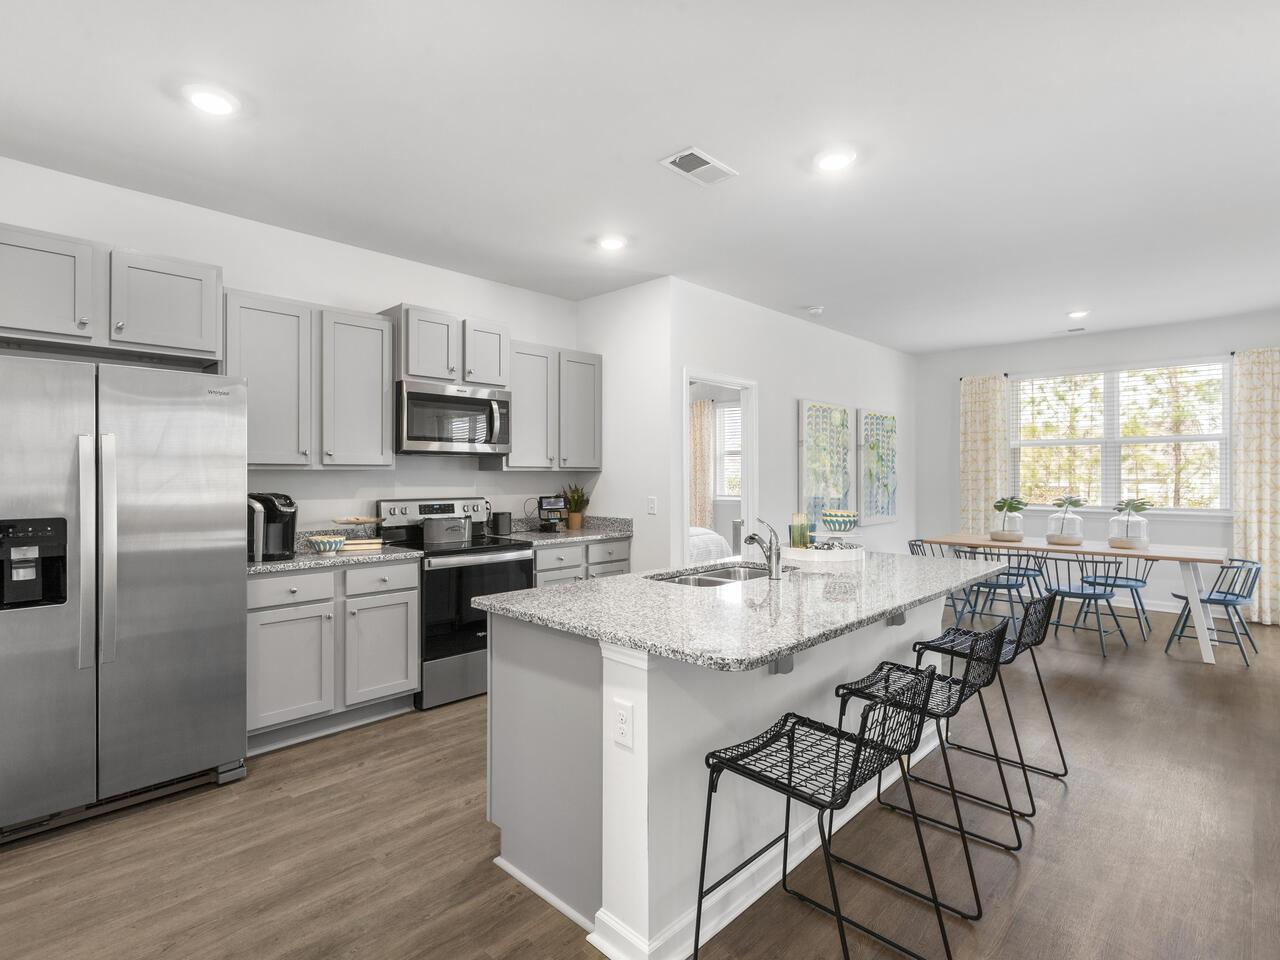 Kitchen featured in the ARIA By D.R. Horton in Jacksonville, NC